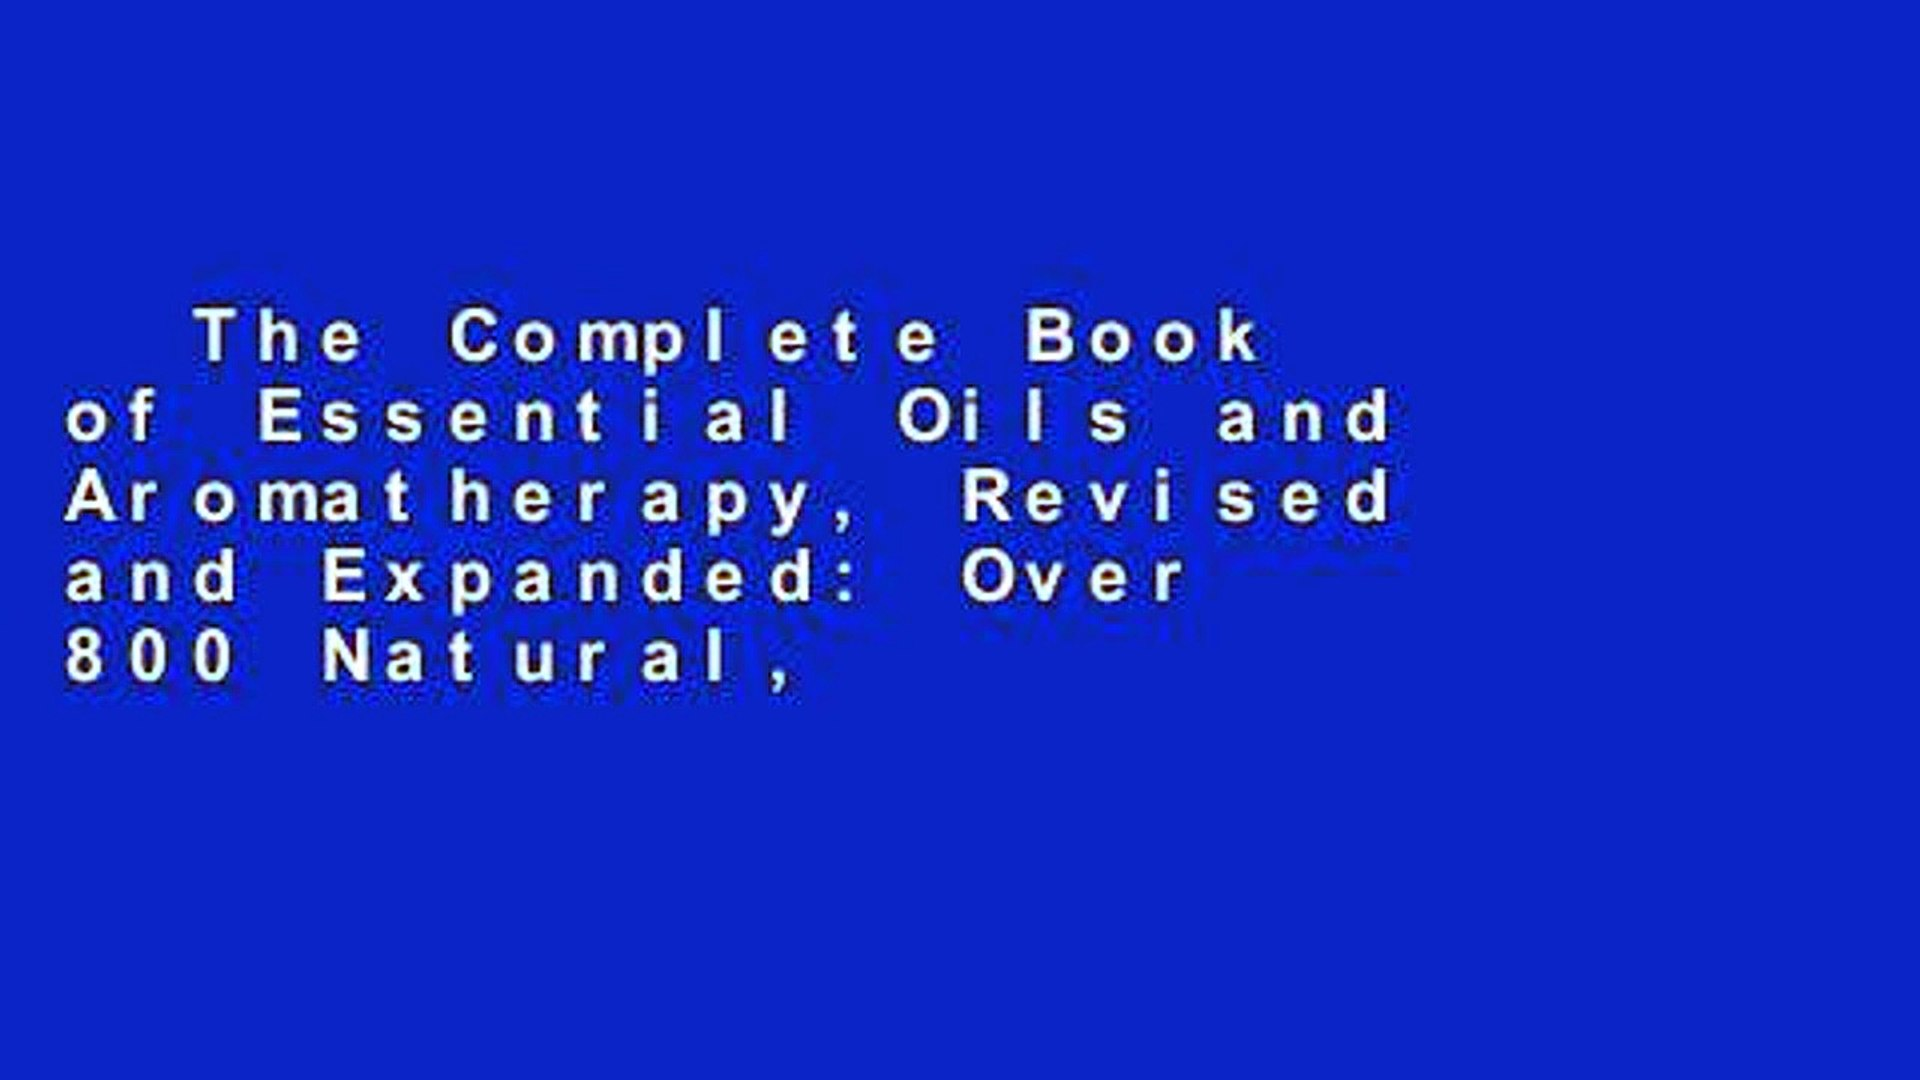 The Complete Book of Essential Oils and Aromatherapy, Revised and Expanded: Over 800 Natural,